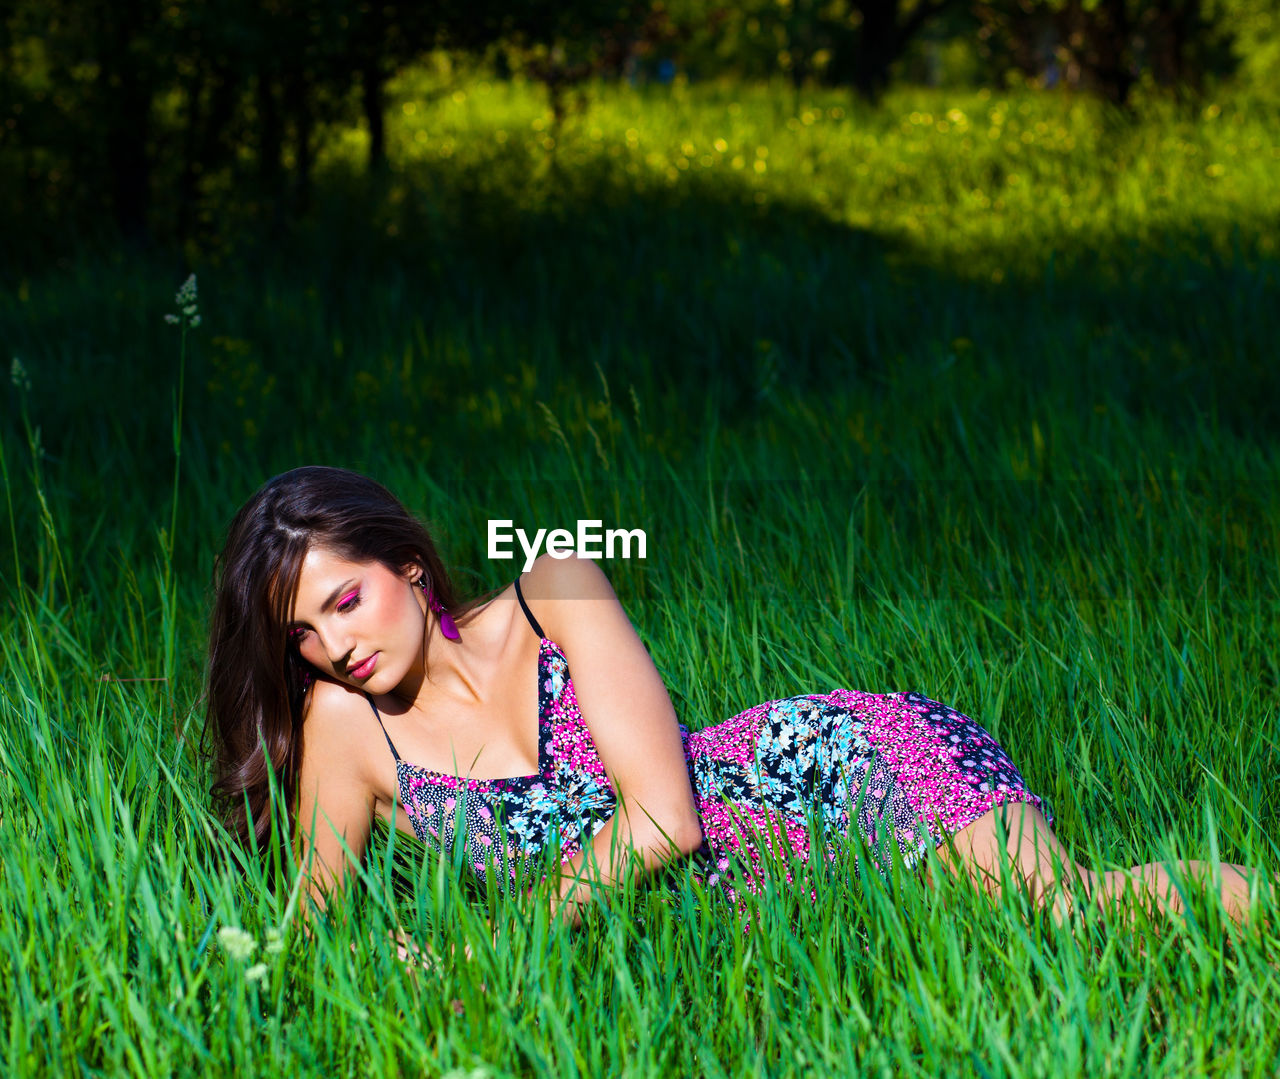 grass, one person, plant, field, real people, land, women, green color, lying down, young adult, leisure activity, young women, nature, lifestyles, relaxation, day, growth, lying on front, beautiful woman, outdoors, hairstyle